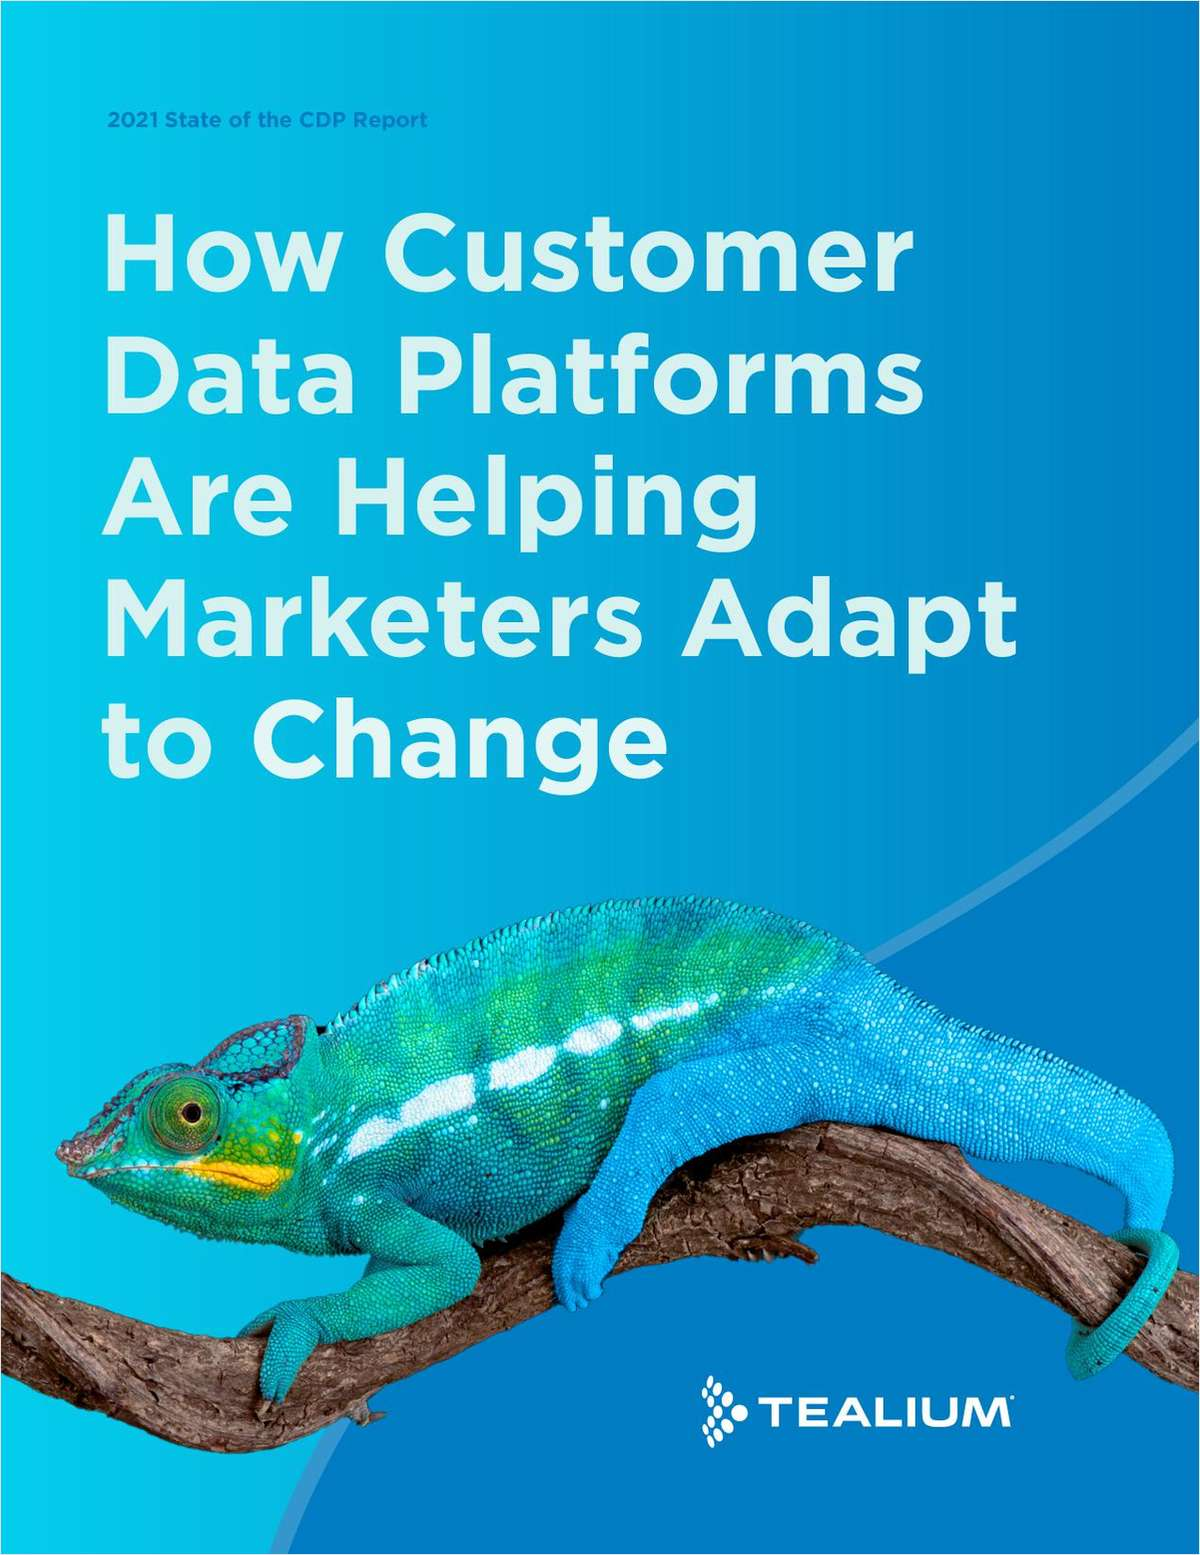 How Customer Data Platforms Are Helping Marketers Adapt to Change